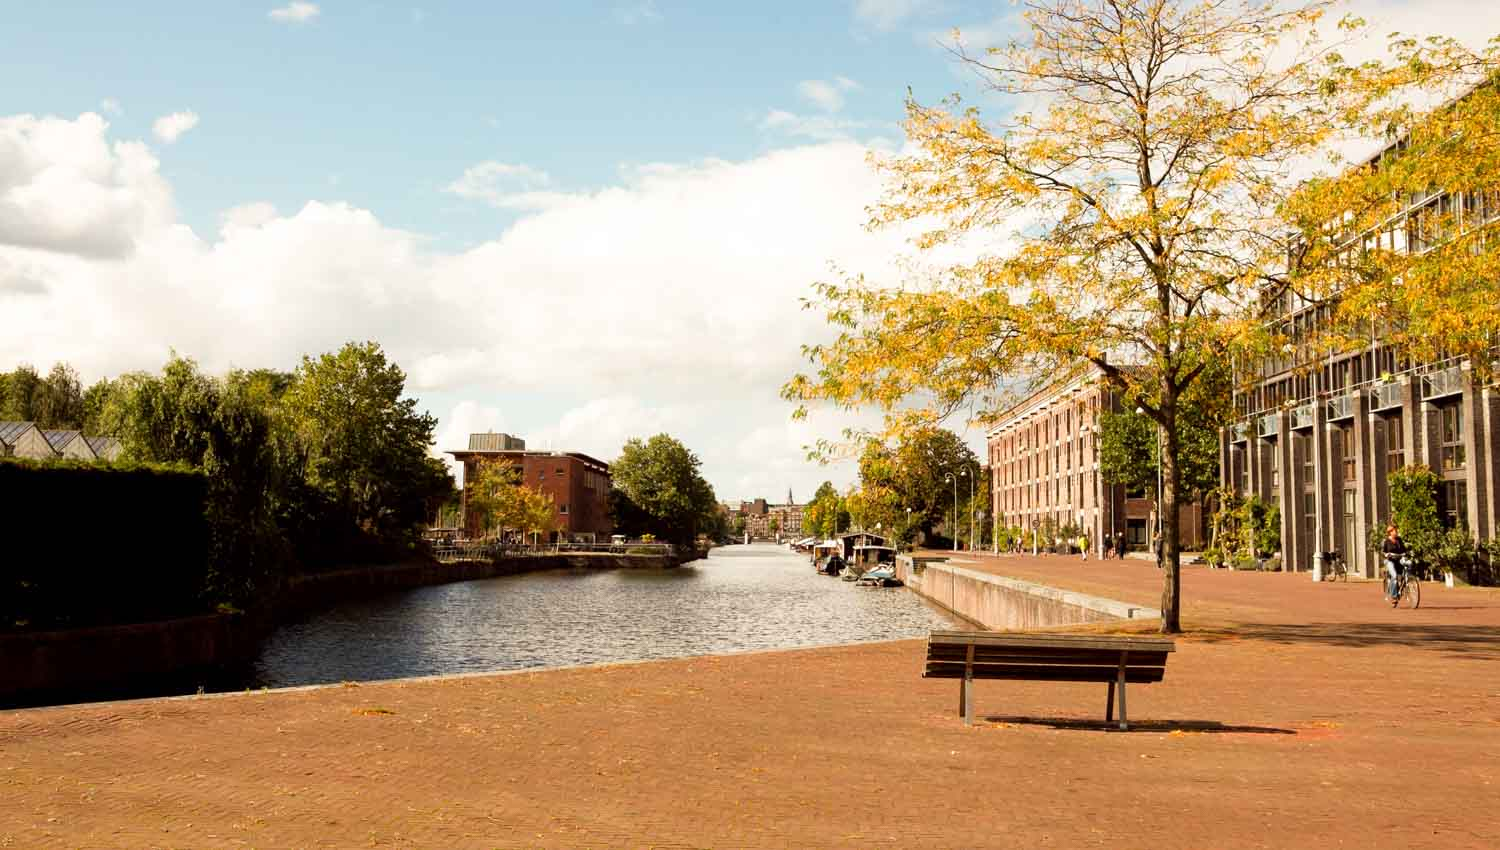 The Singel Canal was originally a moat